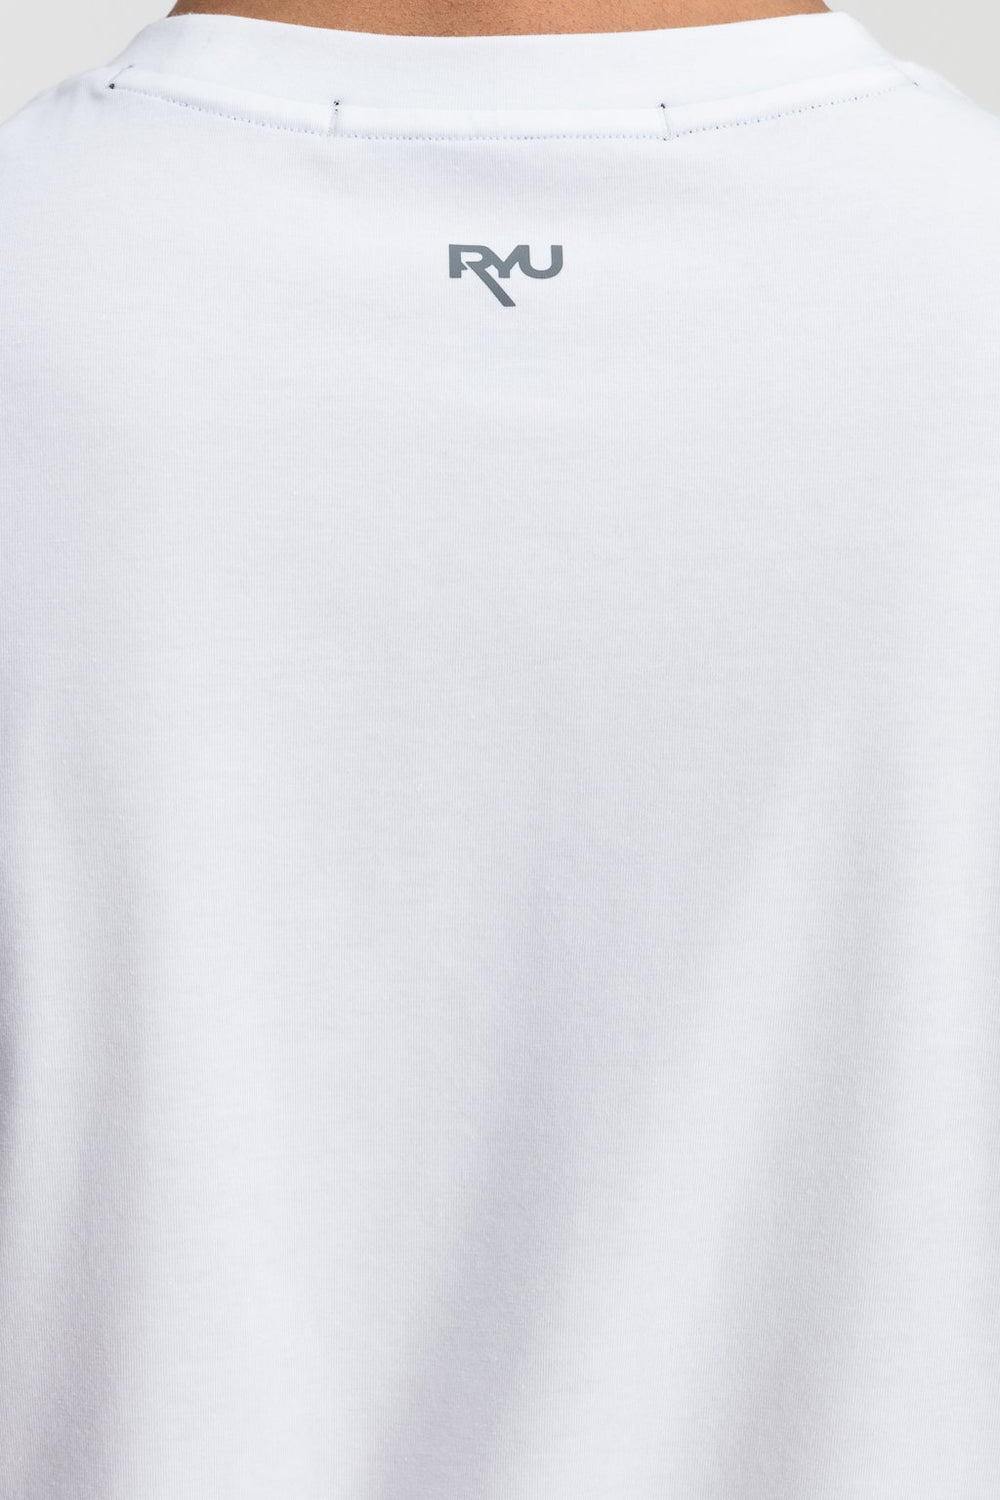 RYU Mens Standard Issue Crew in White